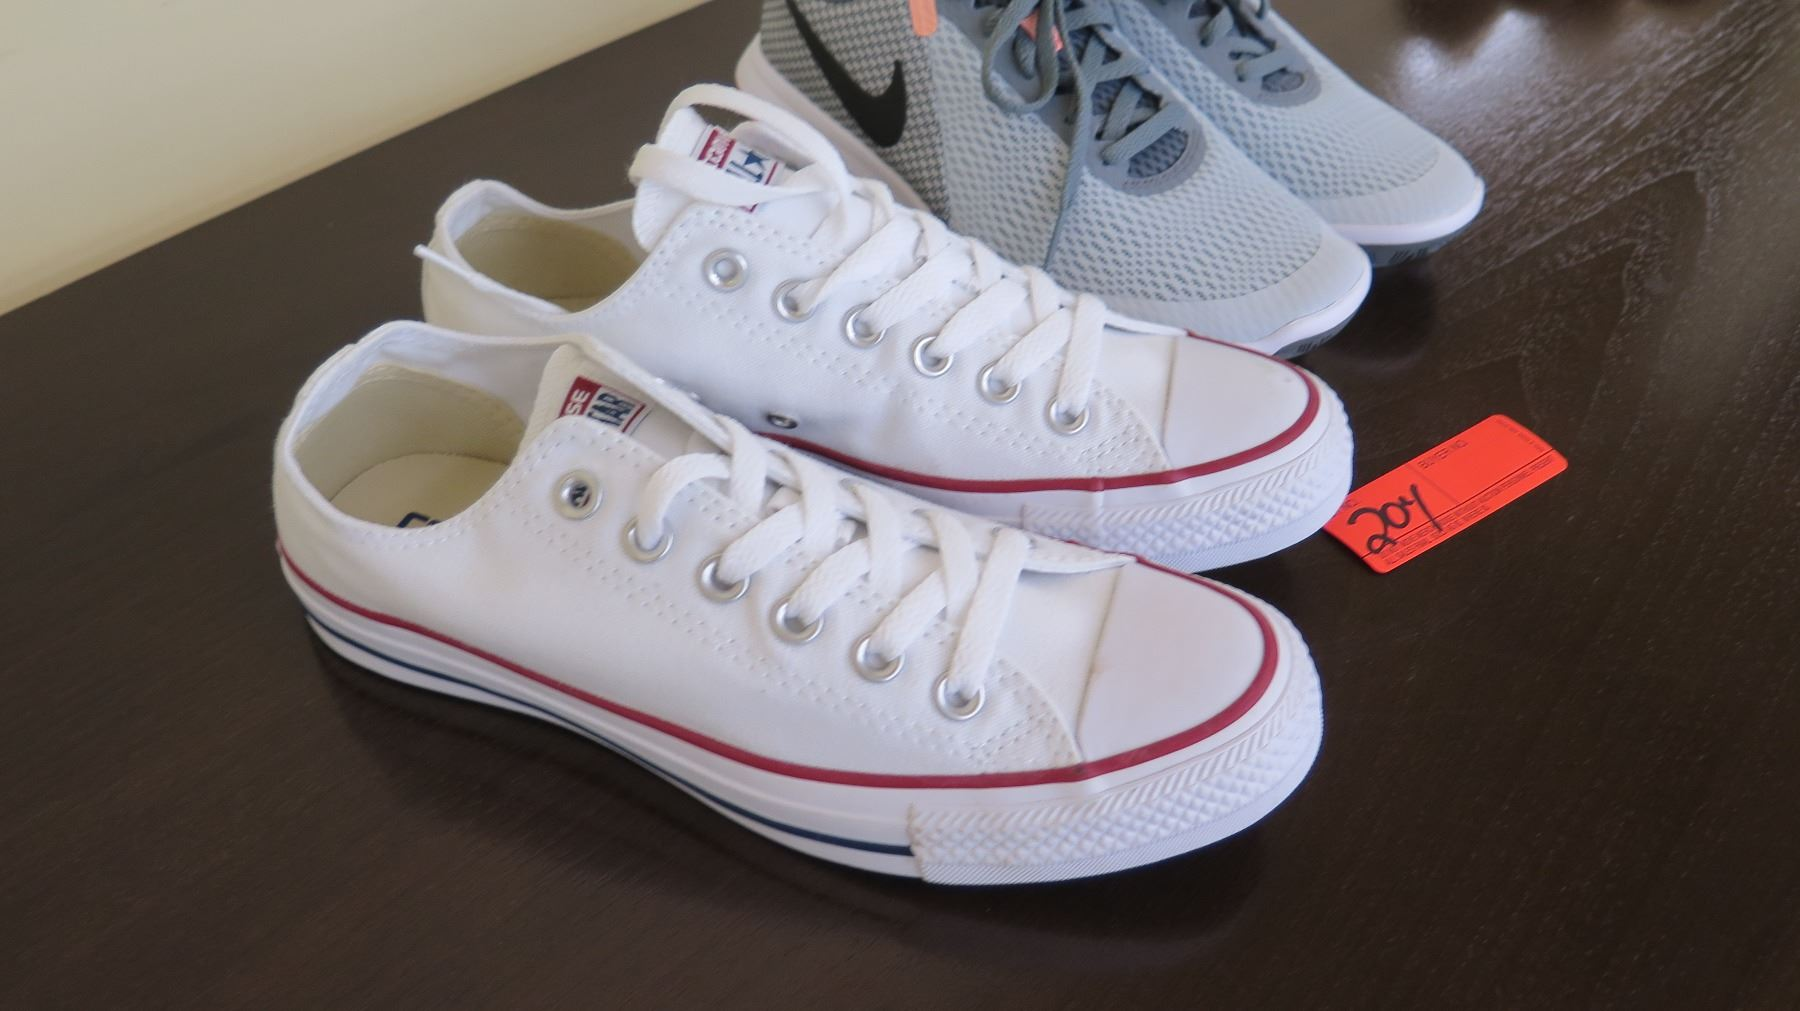 8f979e2ec2b748 ... Image 2   2 Pairs of Women s Sneakers  White Converse (size 7.5)